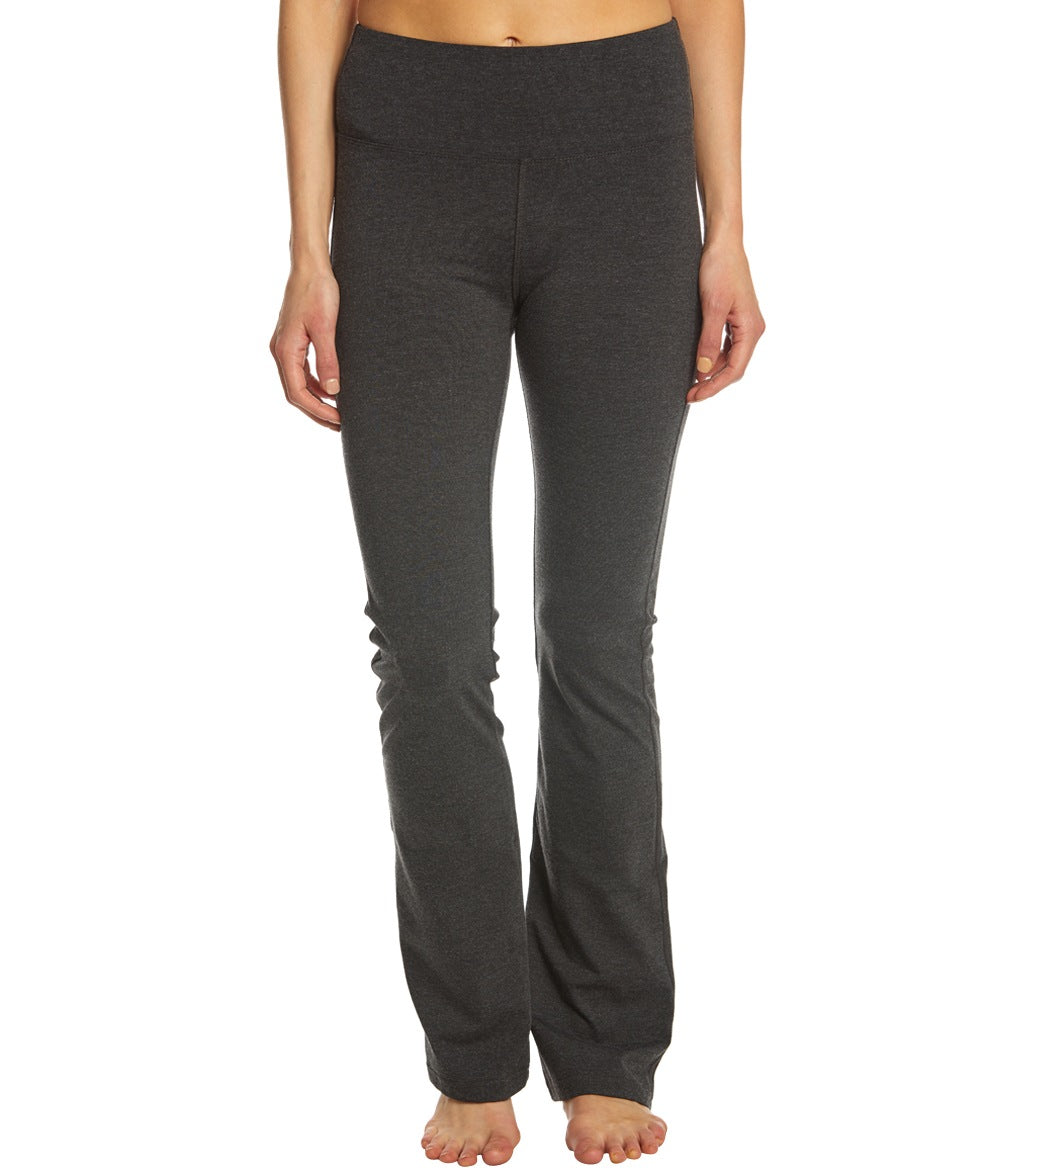 These Marika Sophia High Waisted Tummy Control Slim Boot Pants provide comfort in all the right places. A wide, power mesh lined waistband controls your lower tummy for a figure-flattering fit, while a slim boot-cut gives you a comfortable fit with more room to move and stretch. Features Women\\\'s slim boot-cut pants. 4\\\